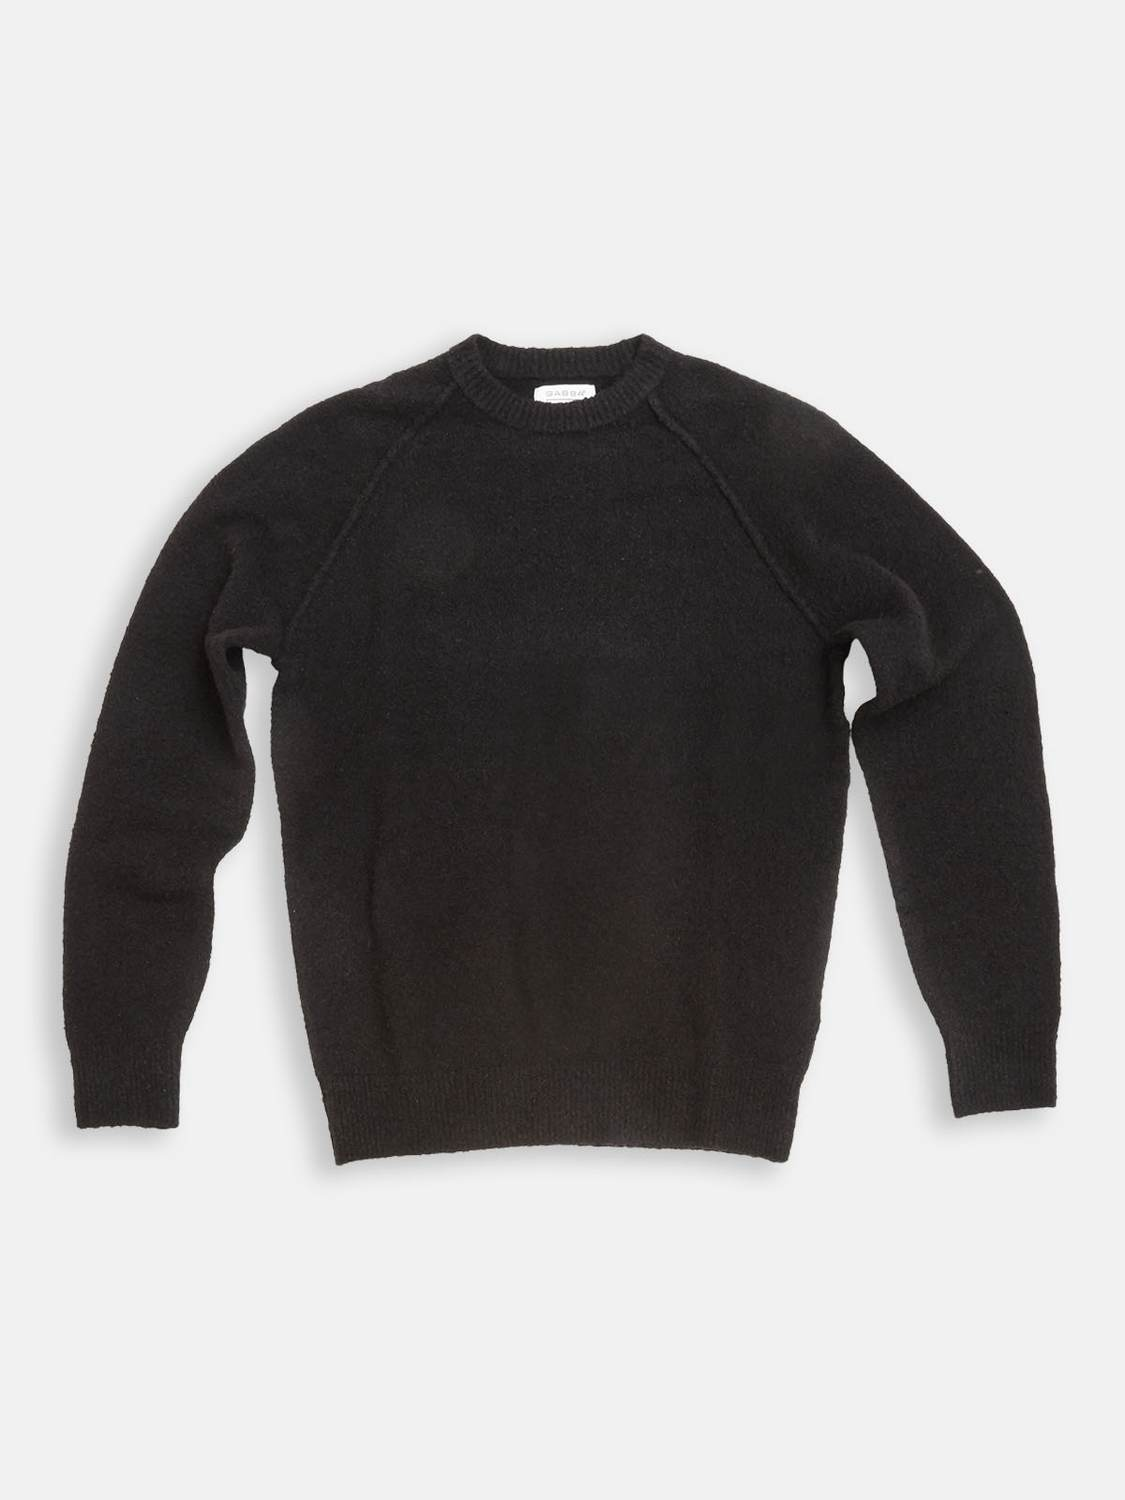 GABBA - ARTIC BOUCLE KNIT BLACK STRIK | GATE 36 Hobro